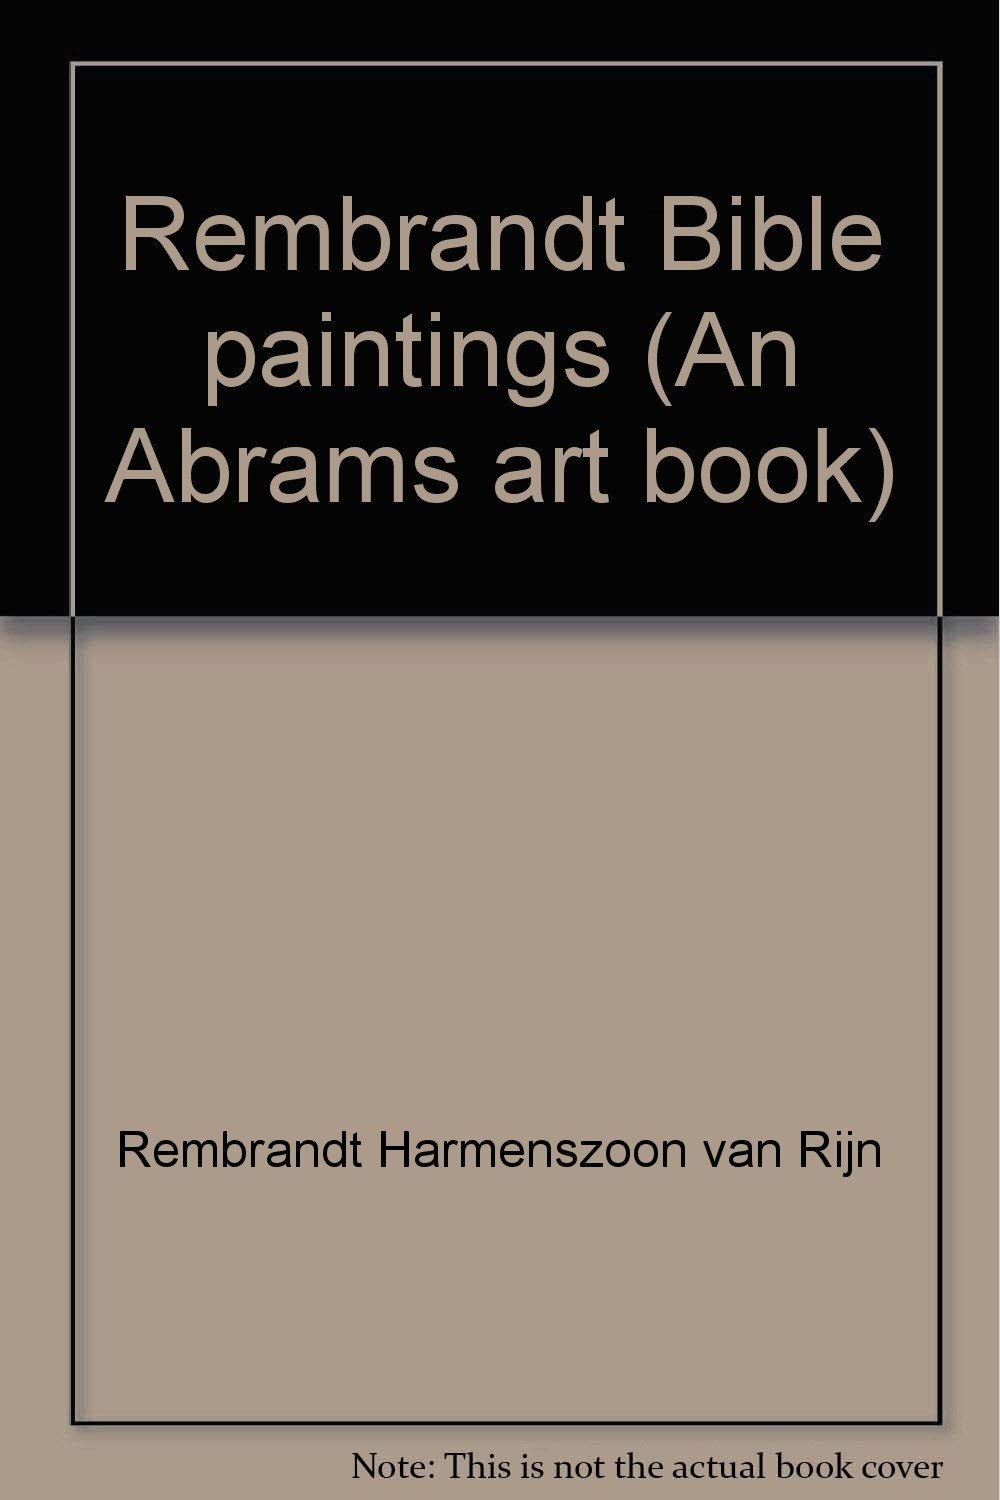 rembrandt bible paintings an abrams art book